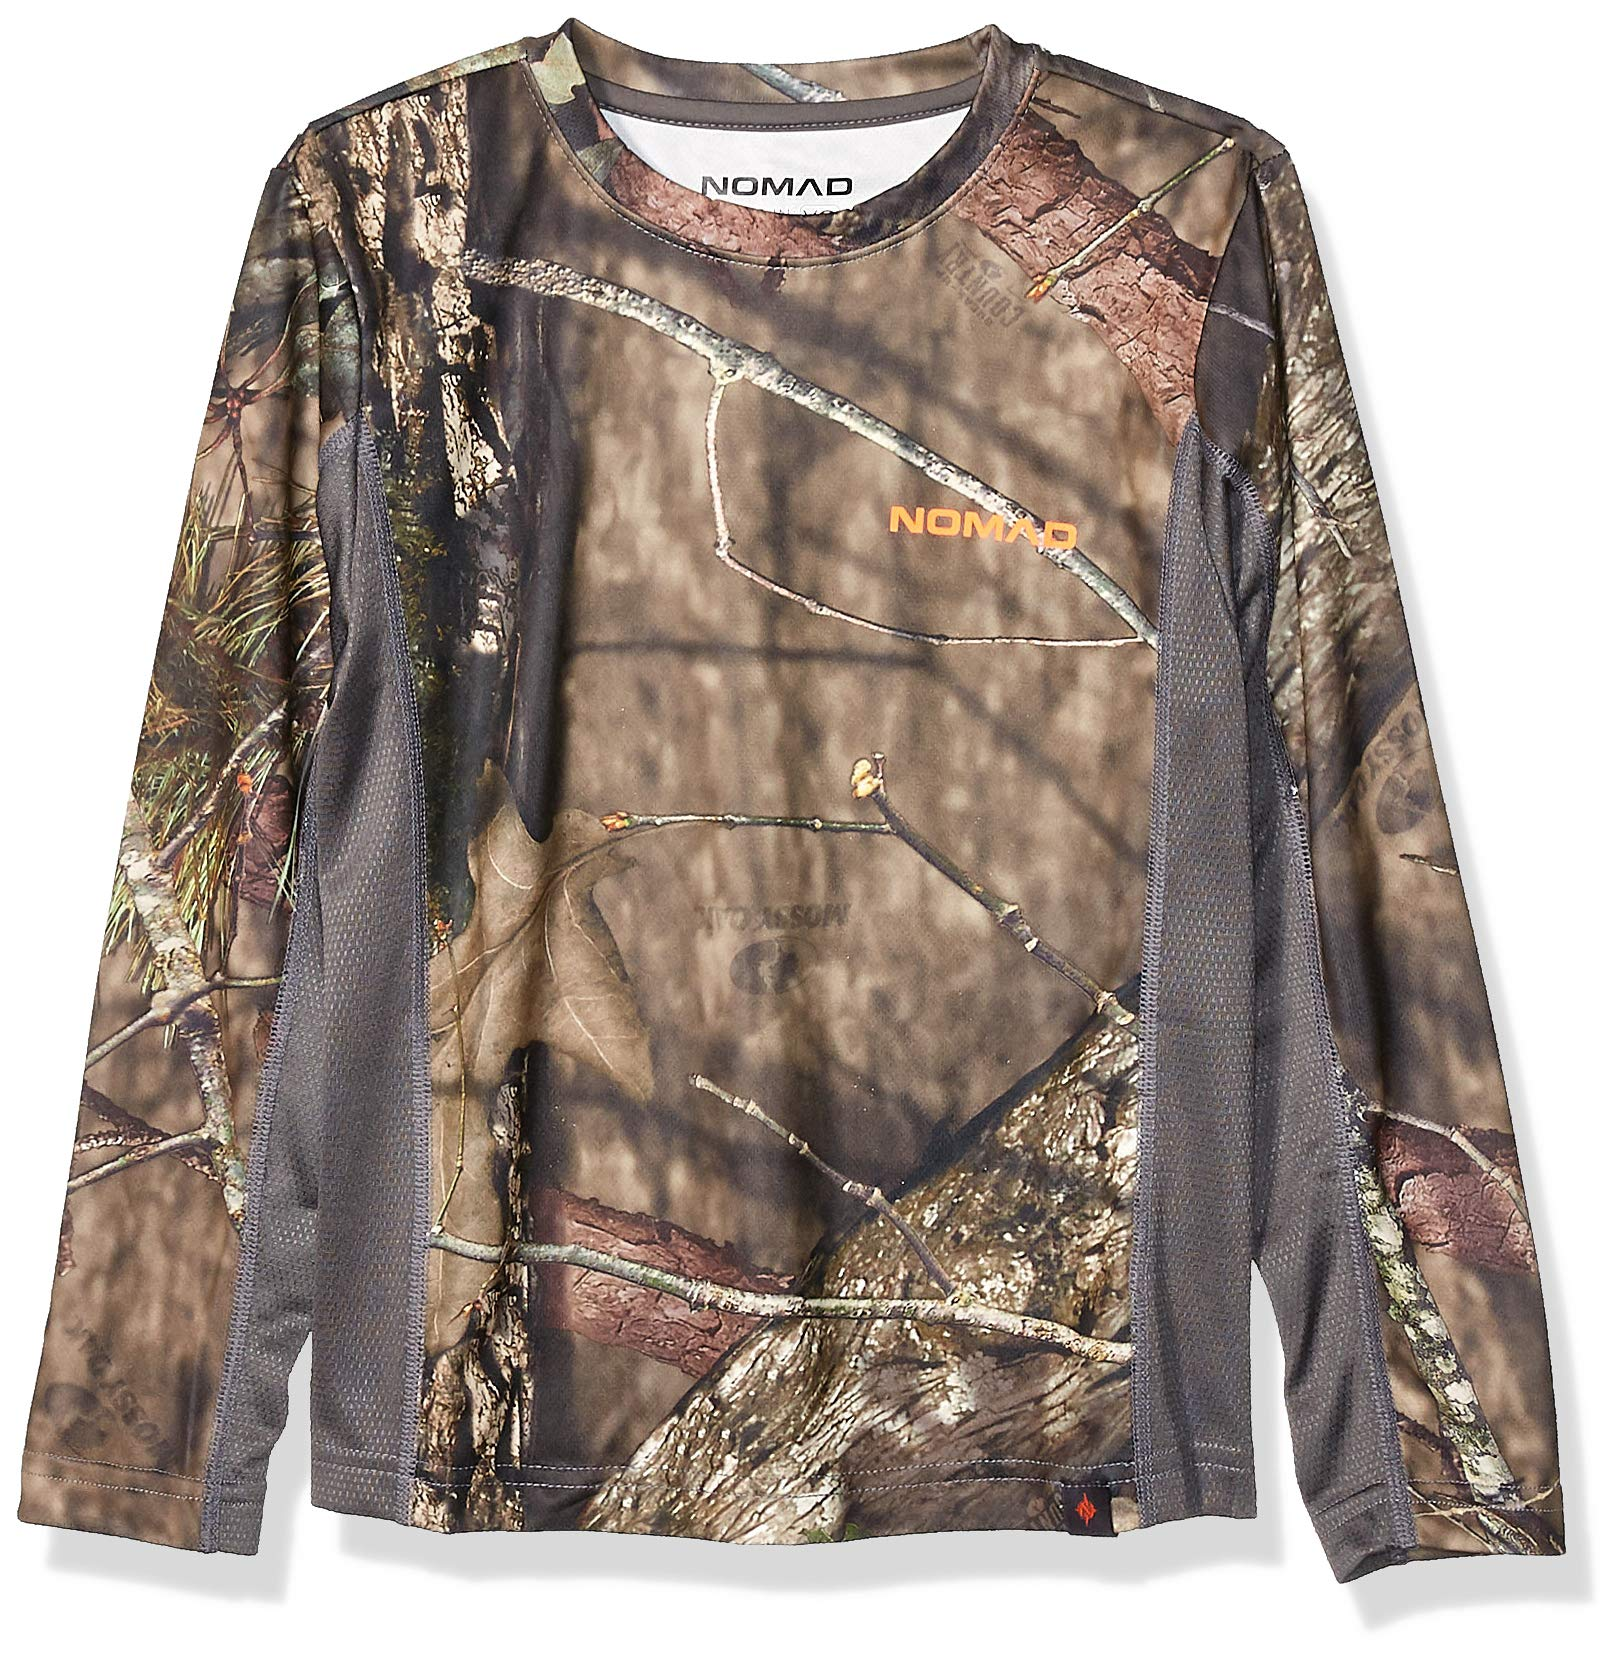 Nomad Kids' Standard Youth Long Sleeve Icon, Mossy Oak Break Up Country, Medium by Nomad Outdoor